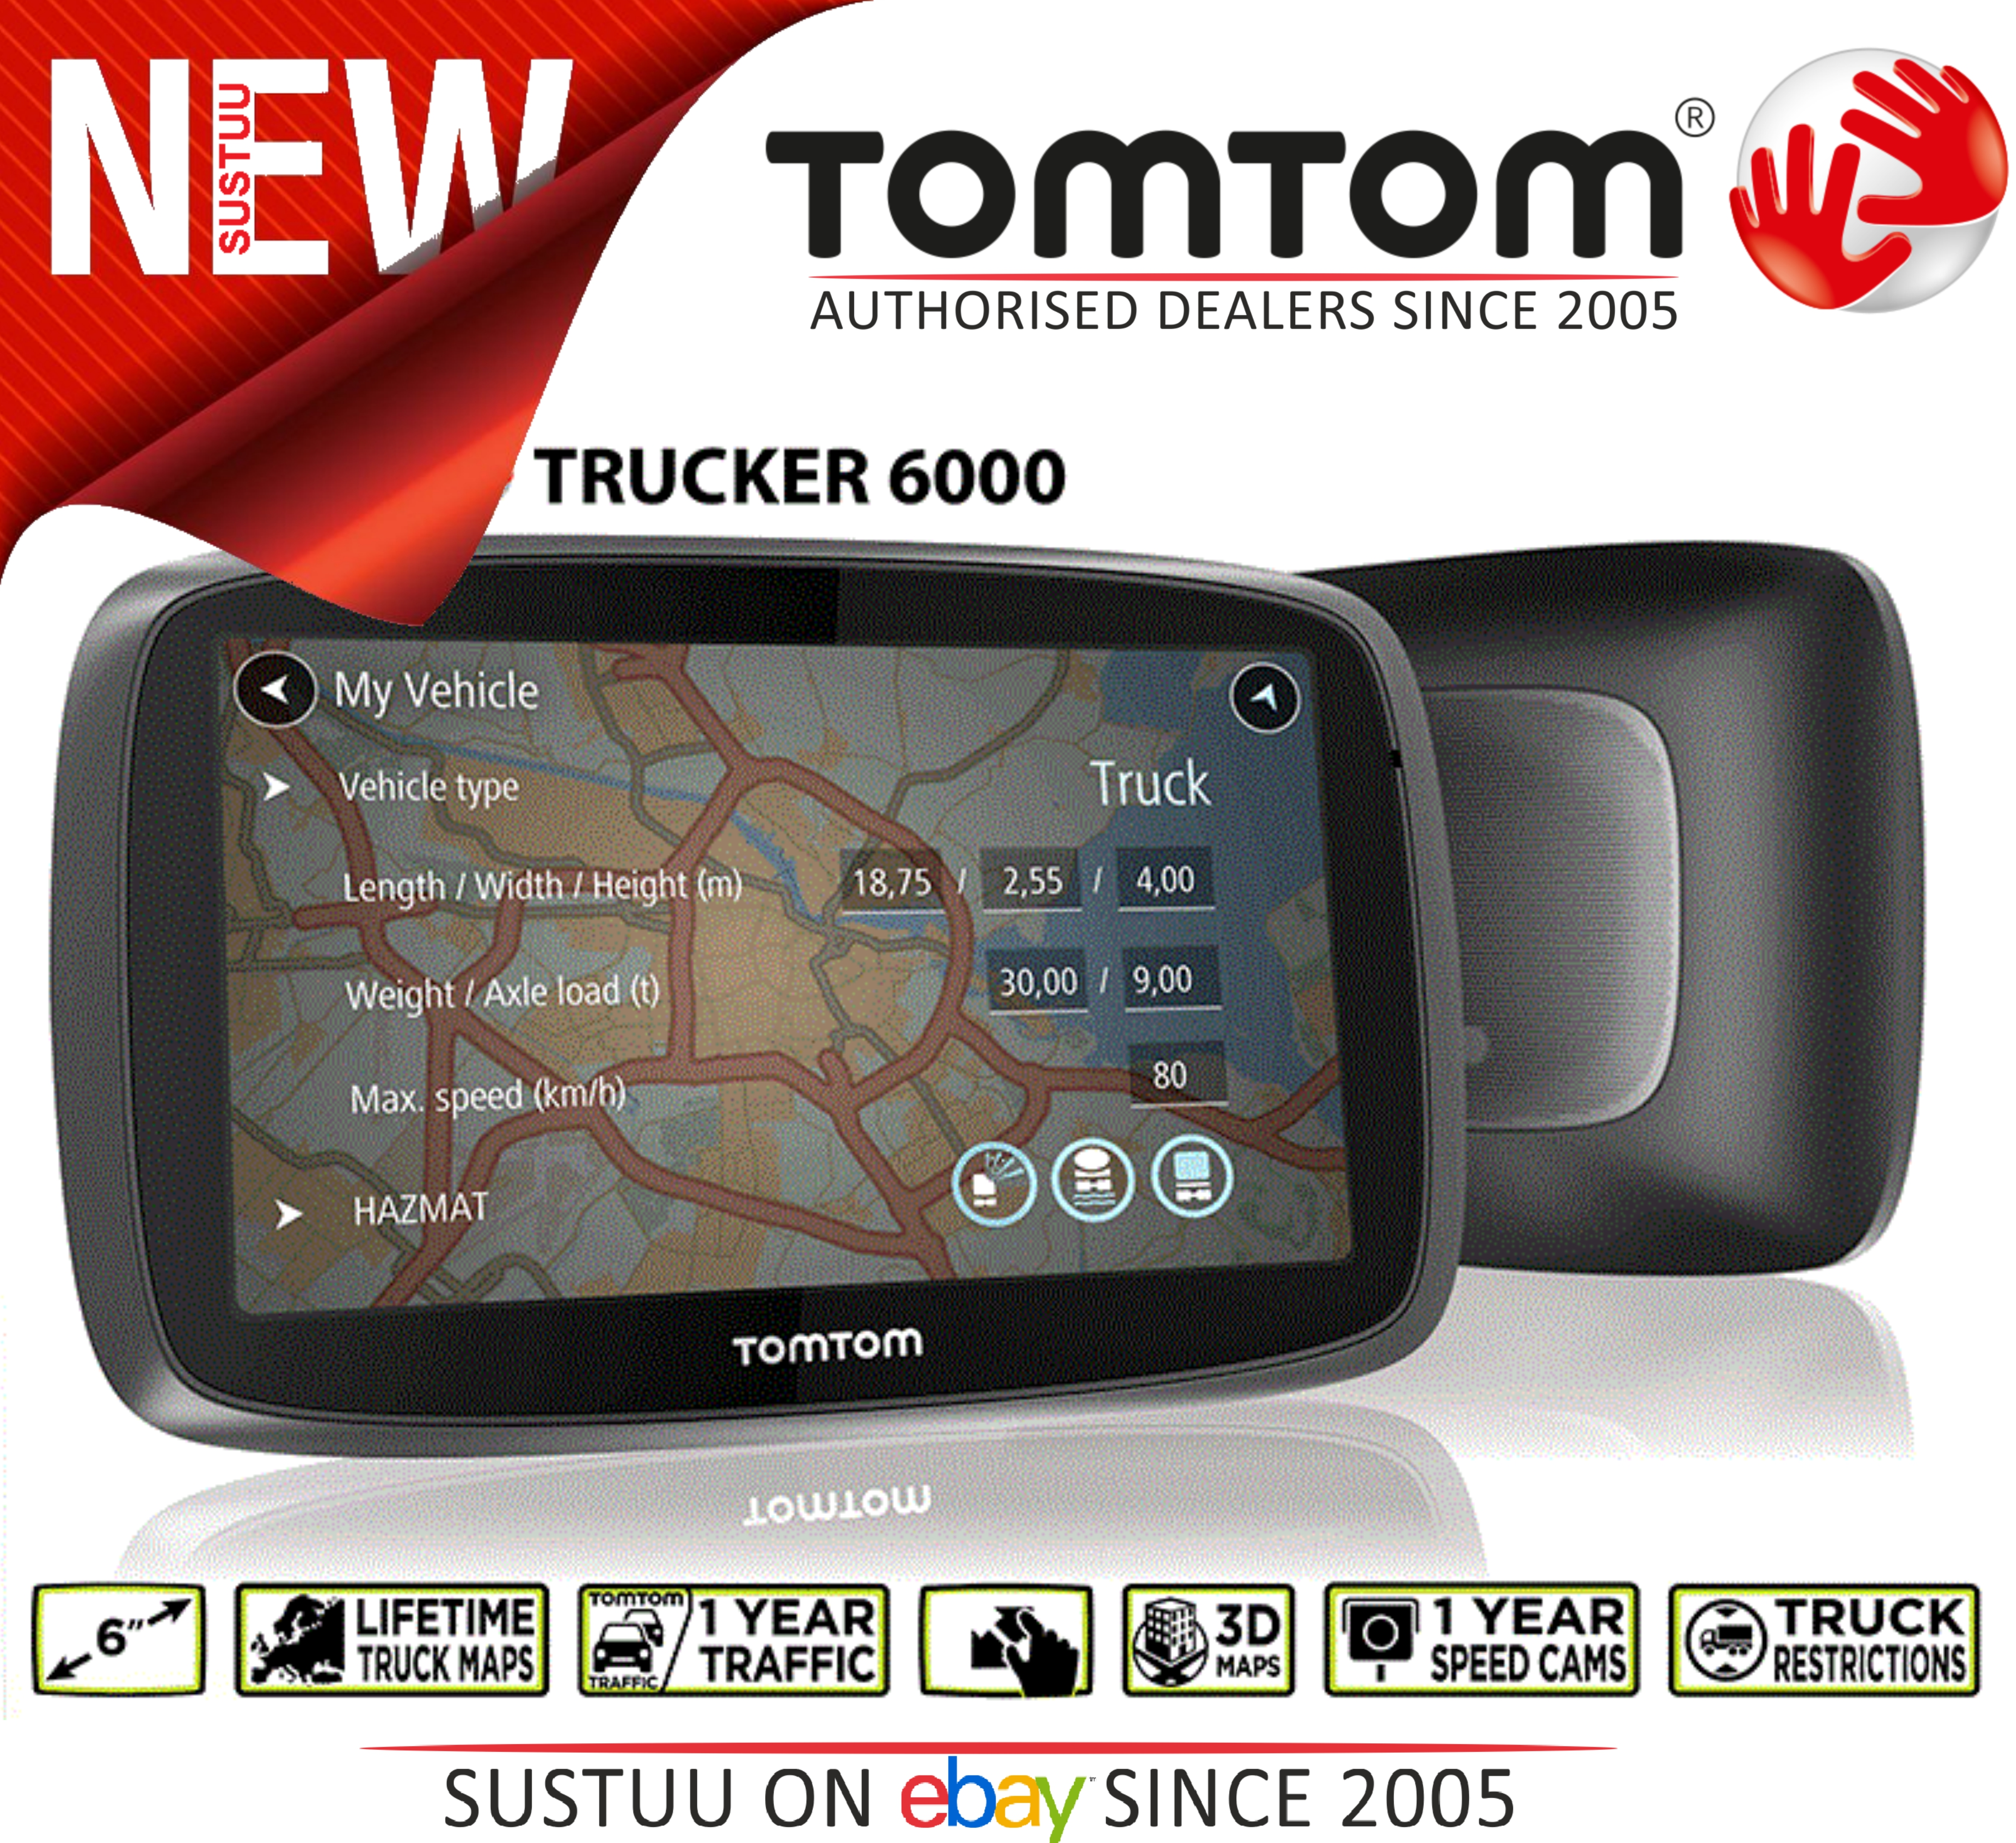 tomtom trucker 6000 gps satnav truck hgv free eu lifetime maps 1 year traffic sustuu. Black Bedroom Furniture Sets. Home Design Ideas